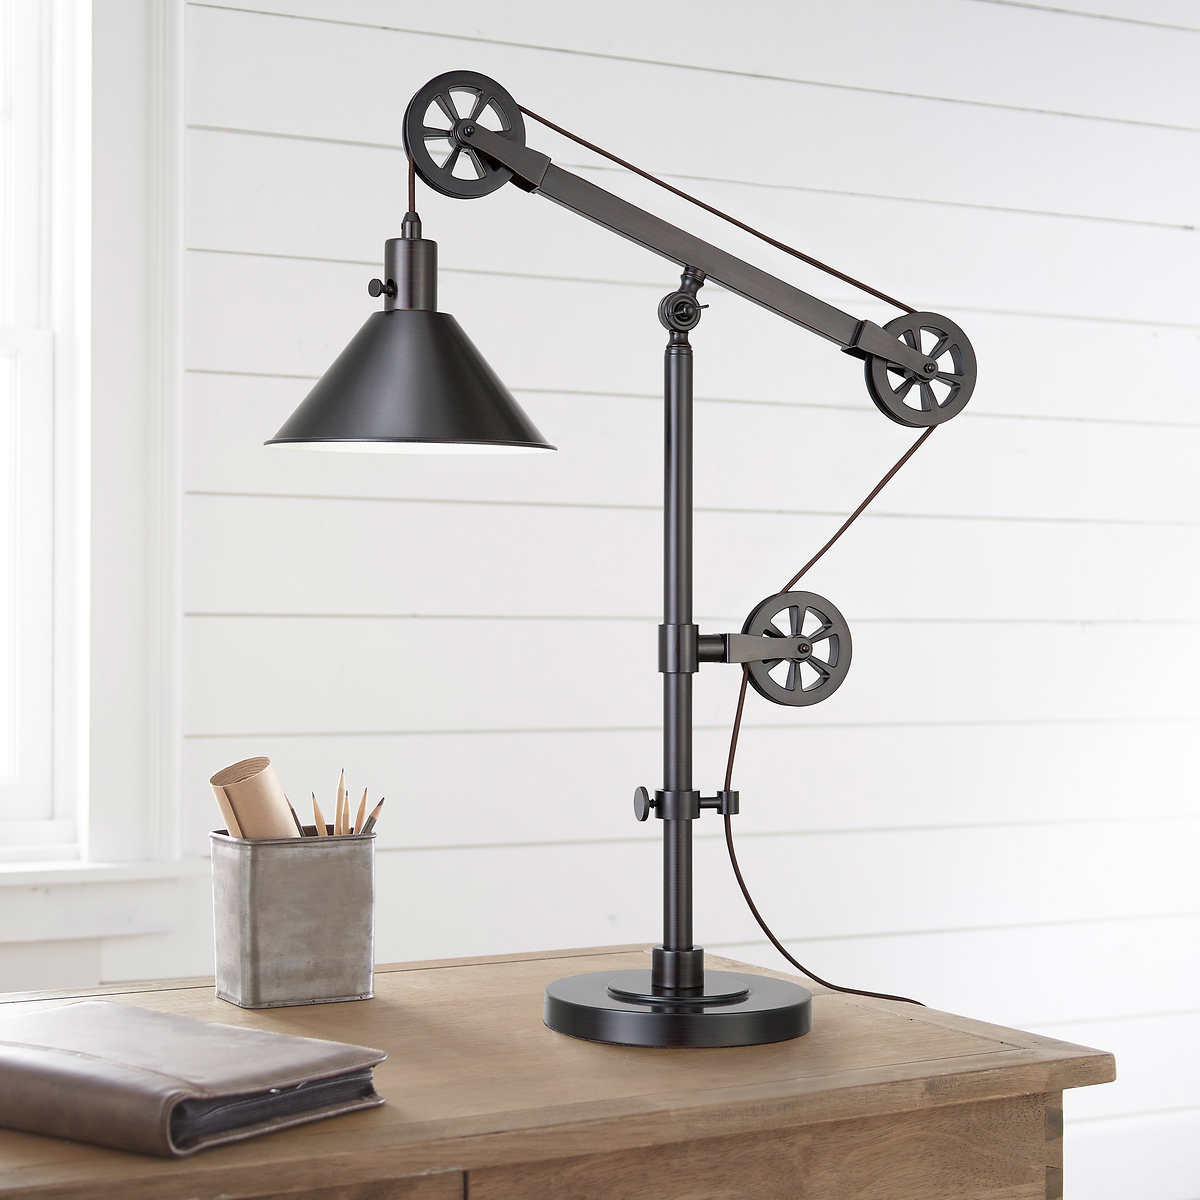 diy decorative ladder out of bamboo poles backyard x.htm industrial pulley table lamp  industrial pulley table lamp